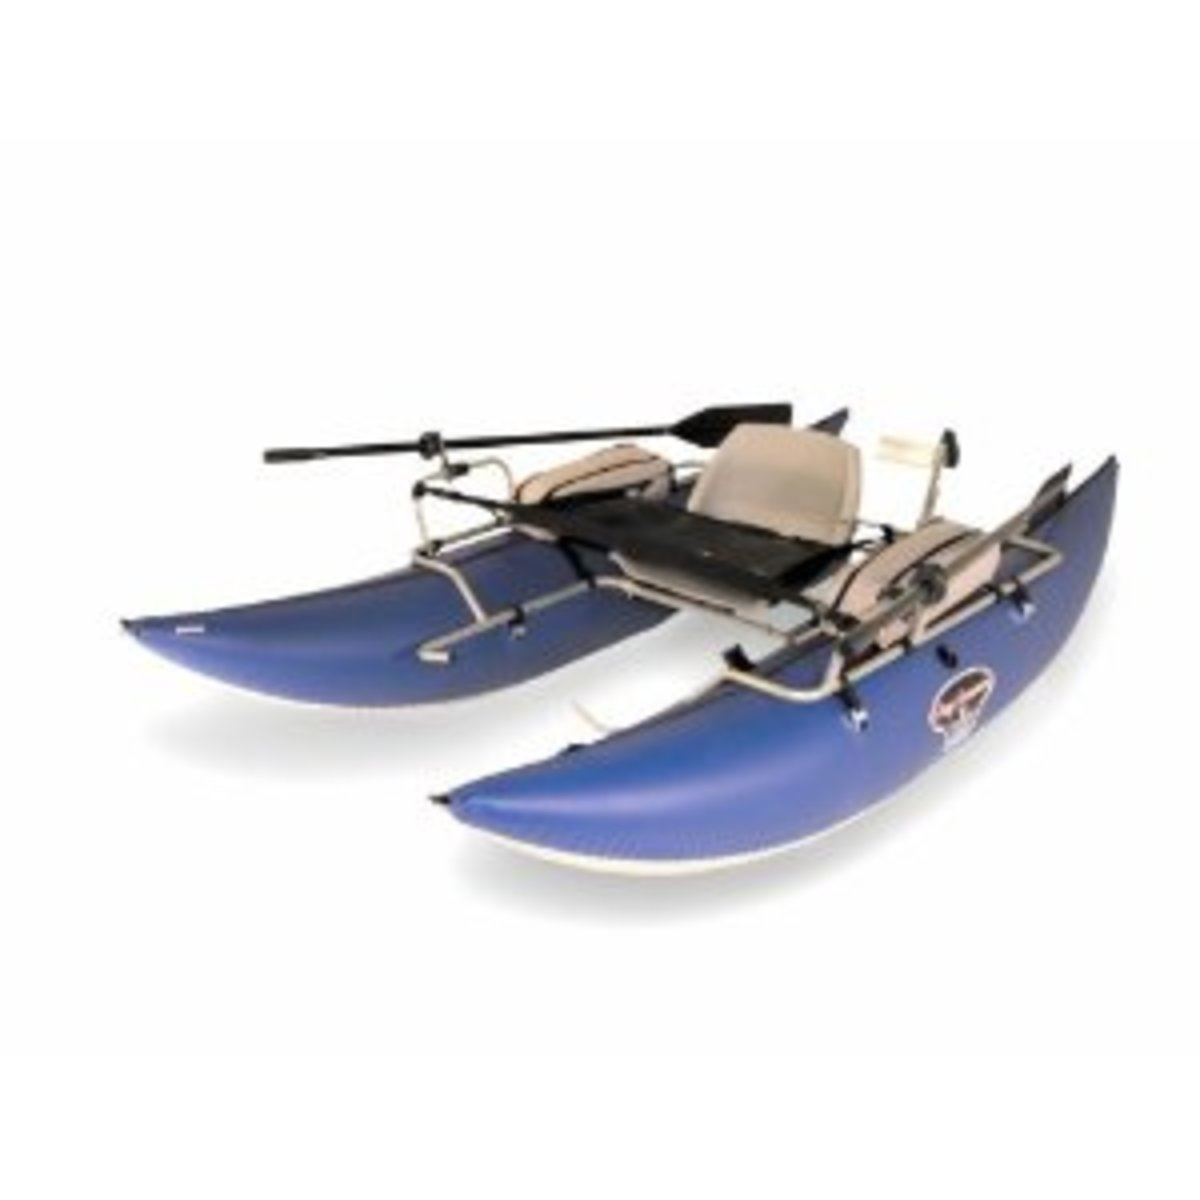 Bucks Bags High Adventure 9-Foot Pontoon Package (Blue)